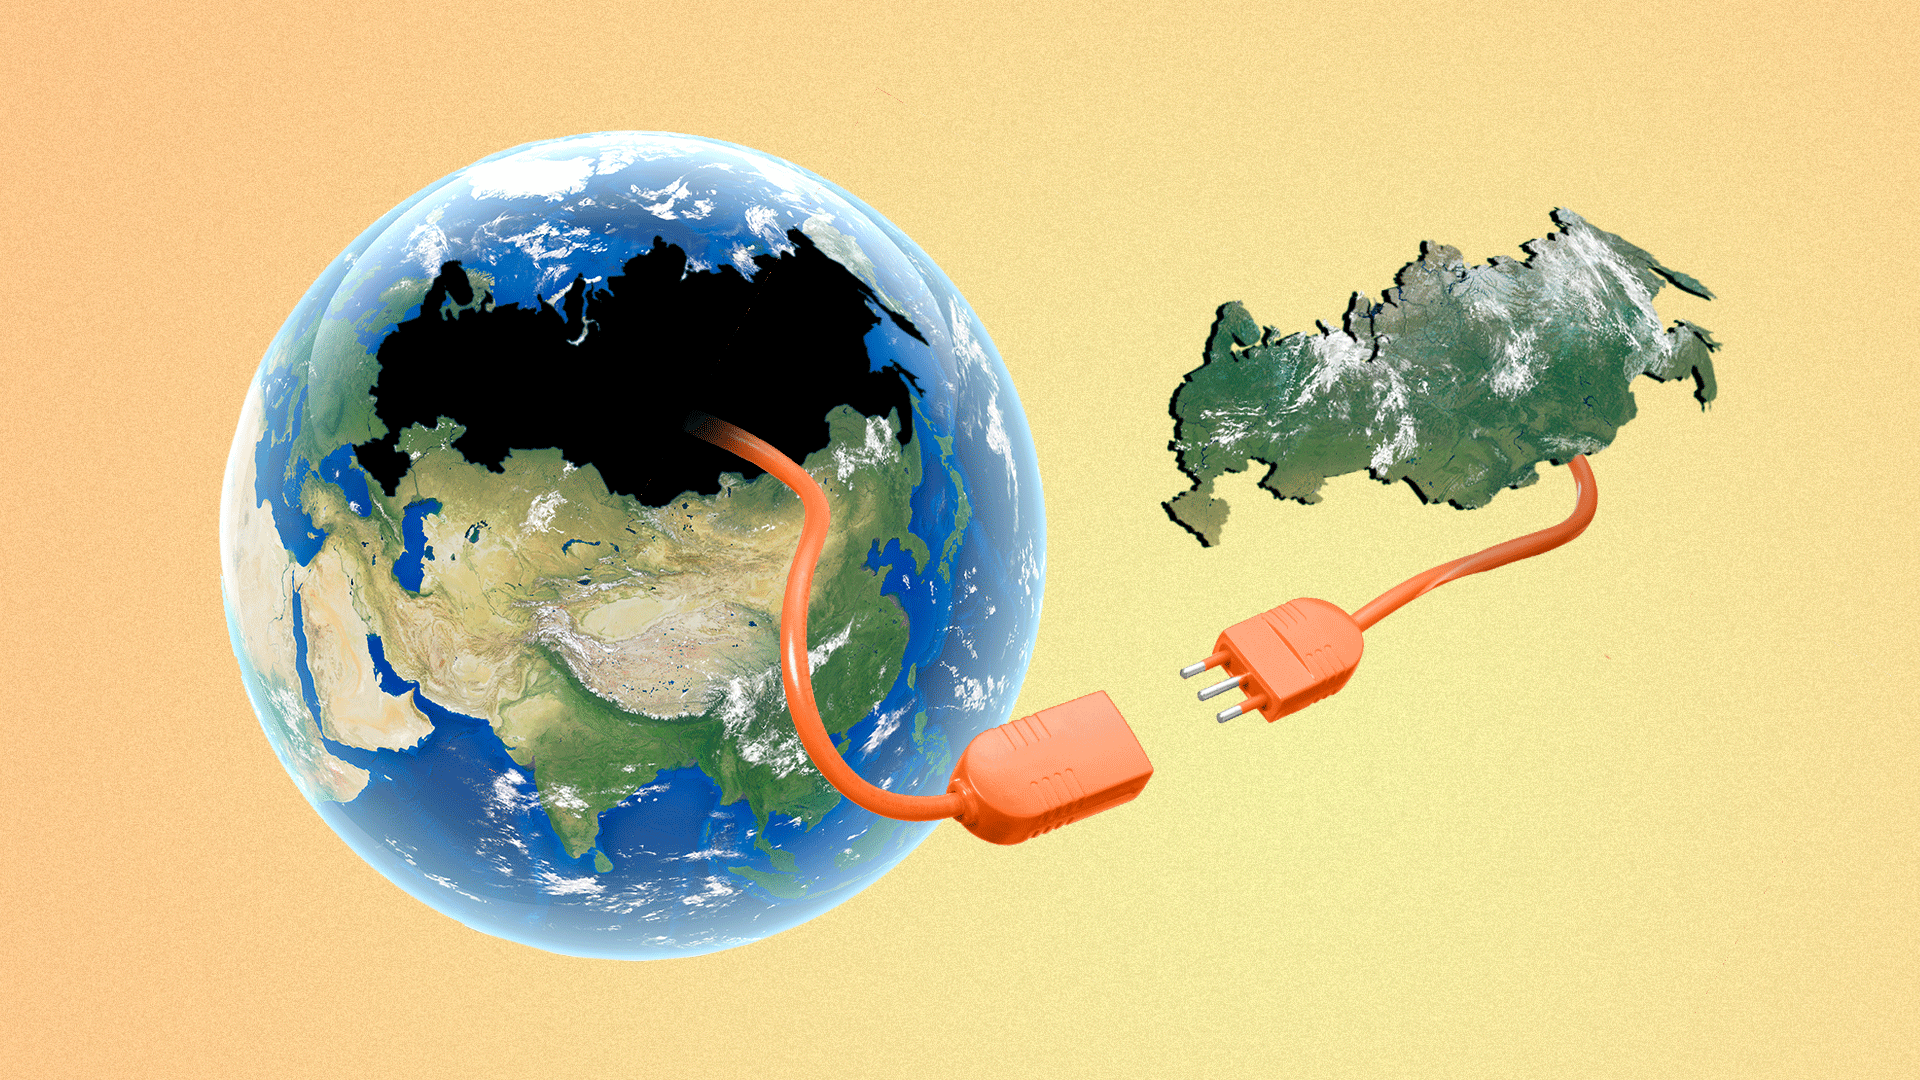 Illustration of a globe with an unplugged extension cable leading from an empty Russia-shaped hole in Earth to a floating Russia which has the other end of the extension cable hanging from it.